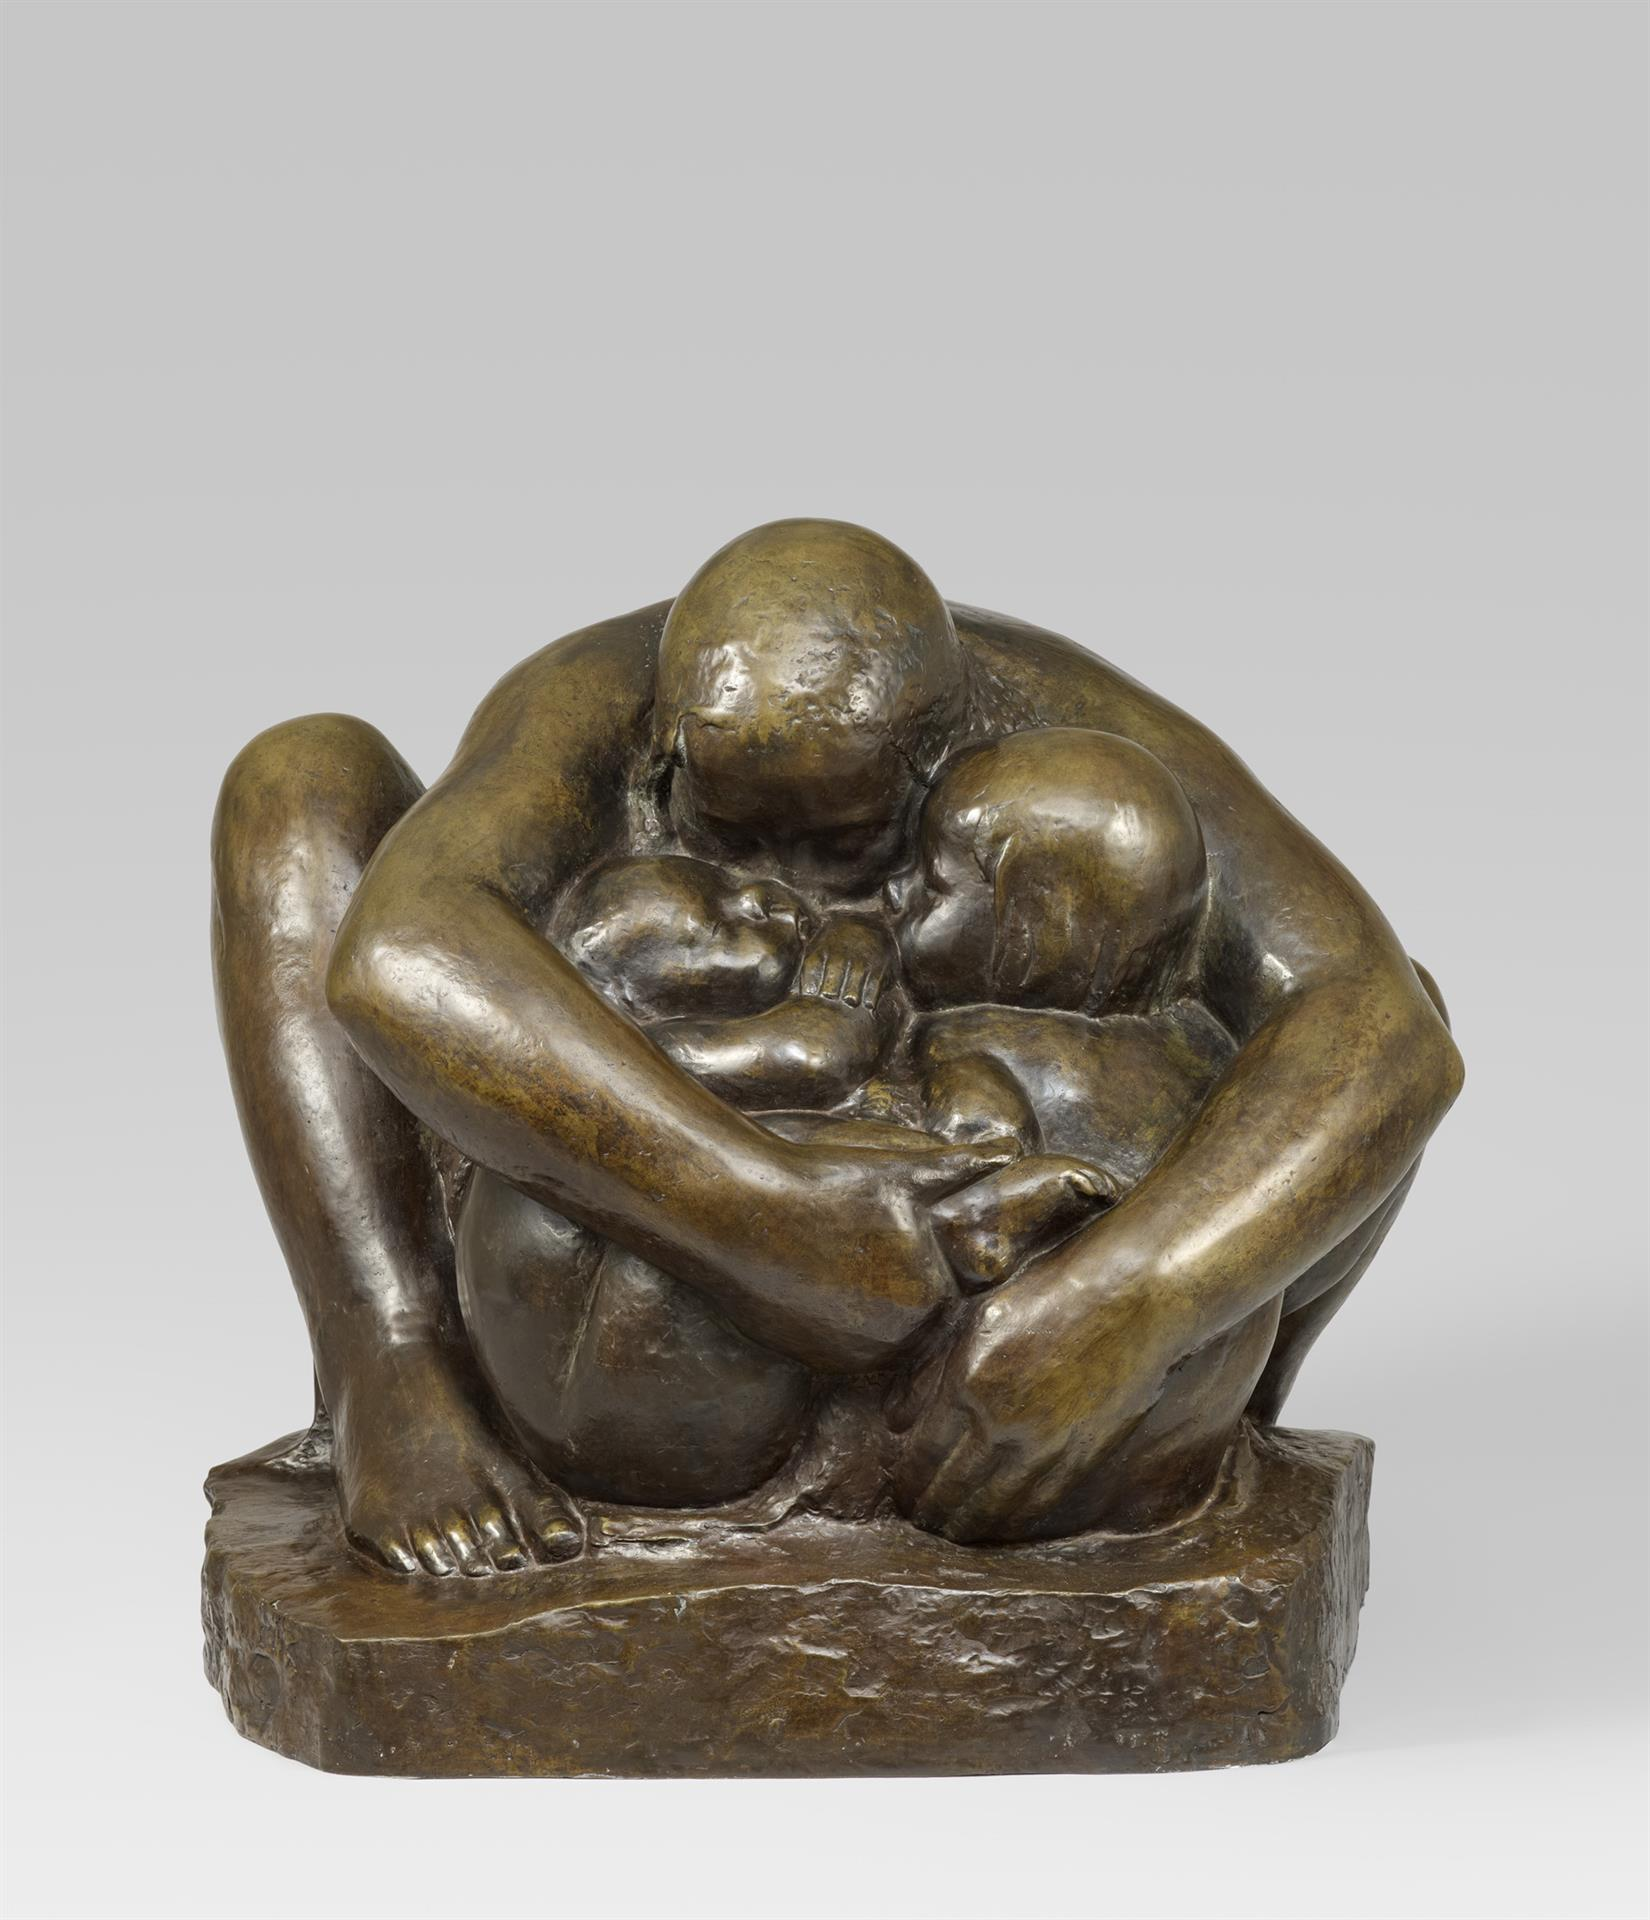 Käthe Kollwitz, Mother with two Children, 1932-1936, bronze, Seeler 29 I.B.6., Cologne Kollwitz Collection © Käthe Kollwitz Museum Köln